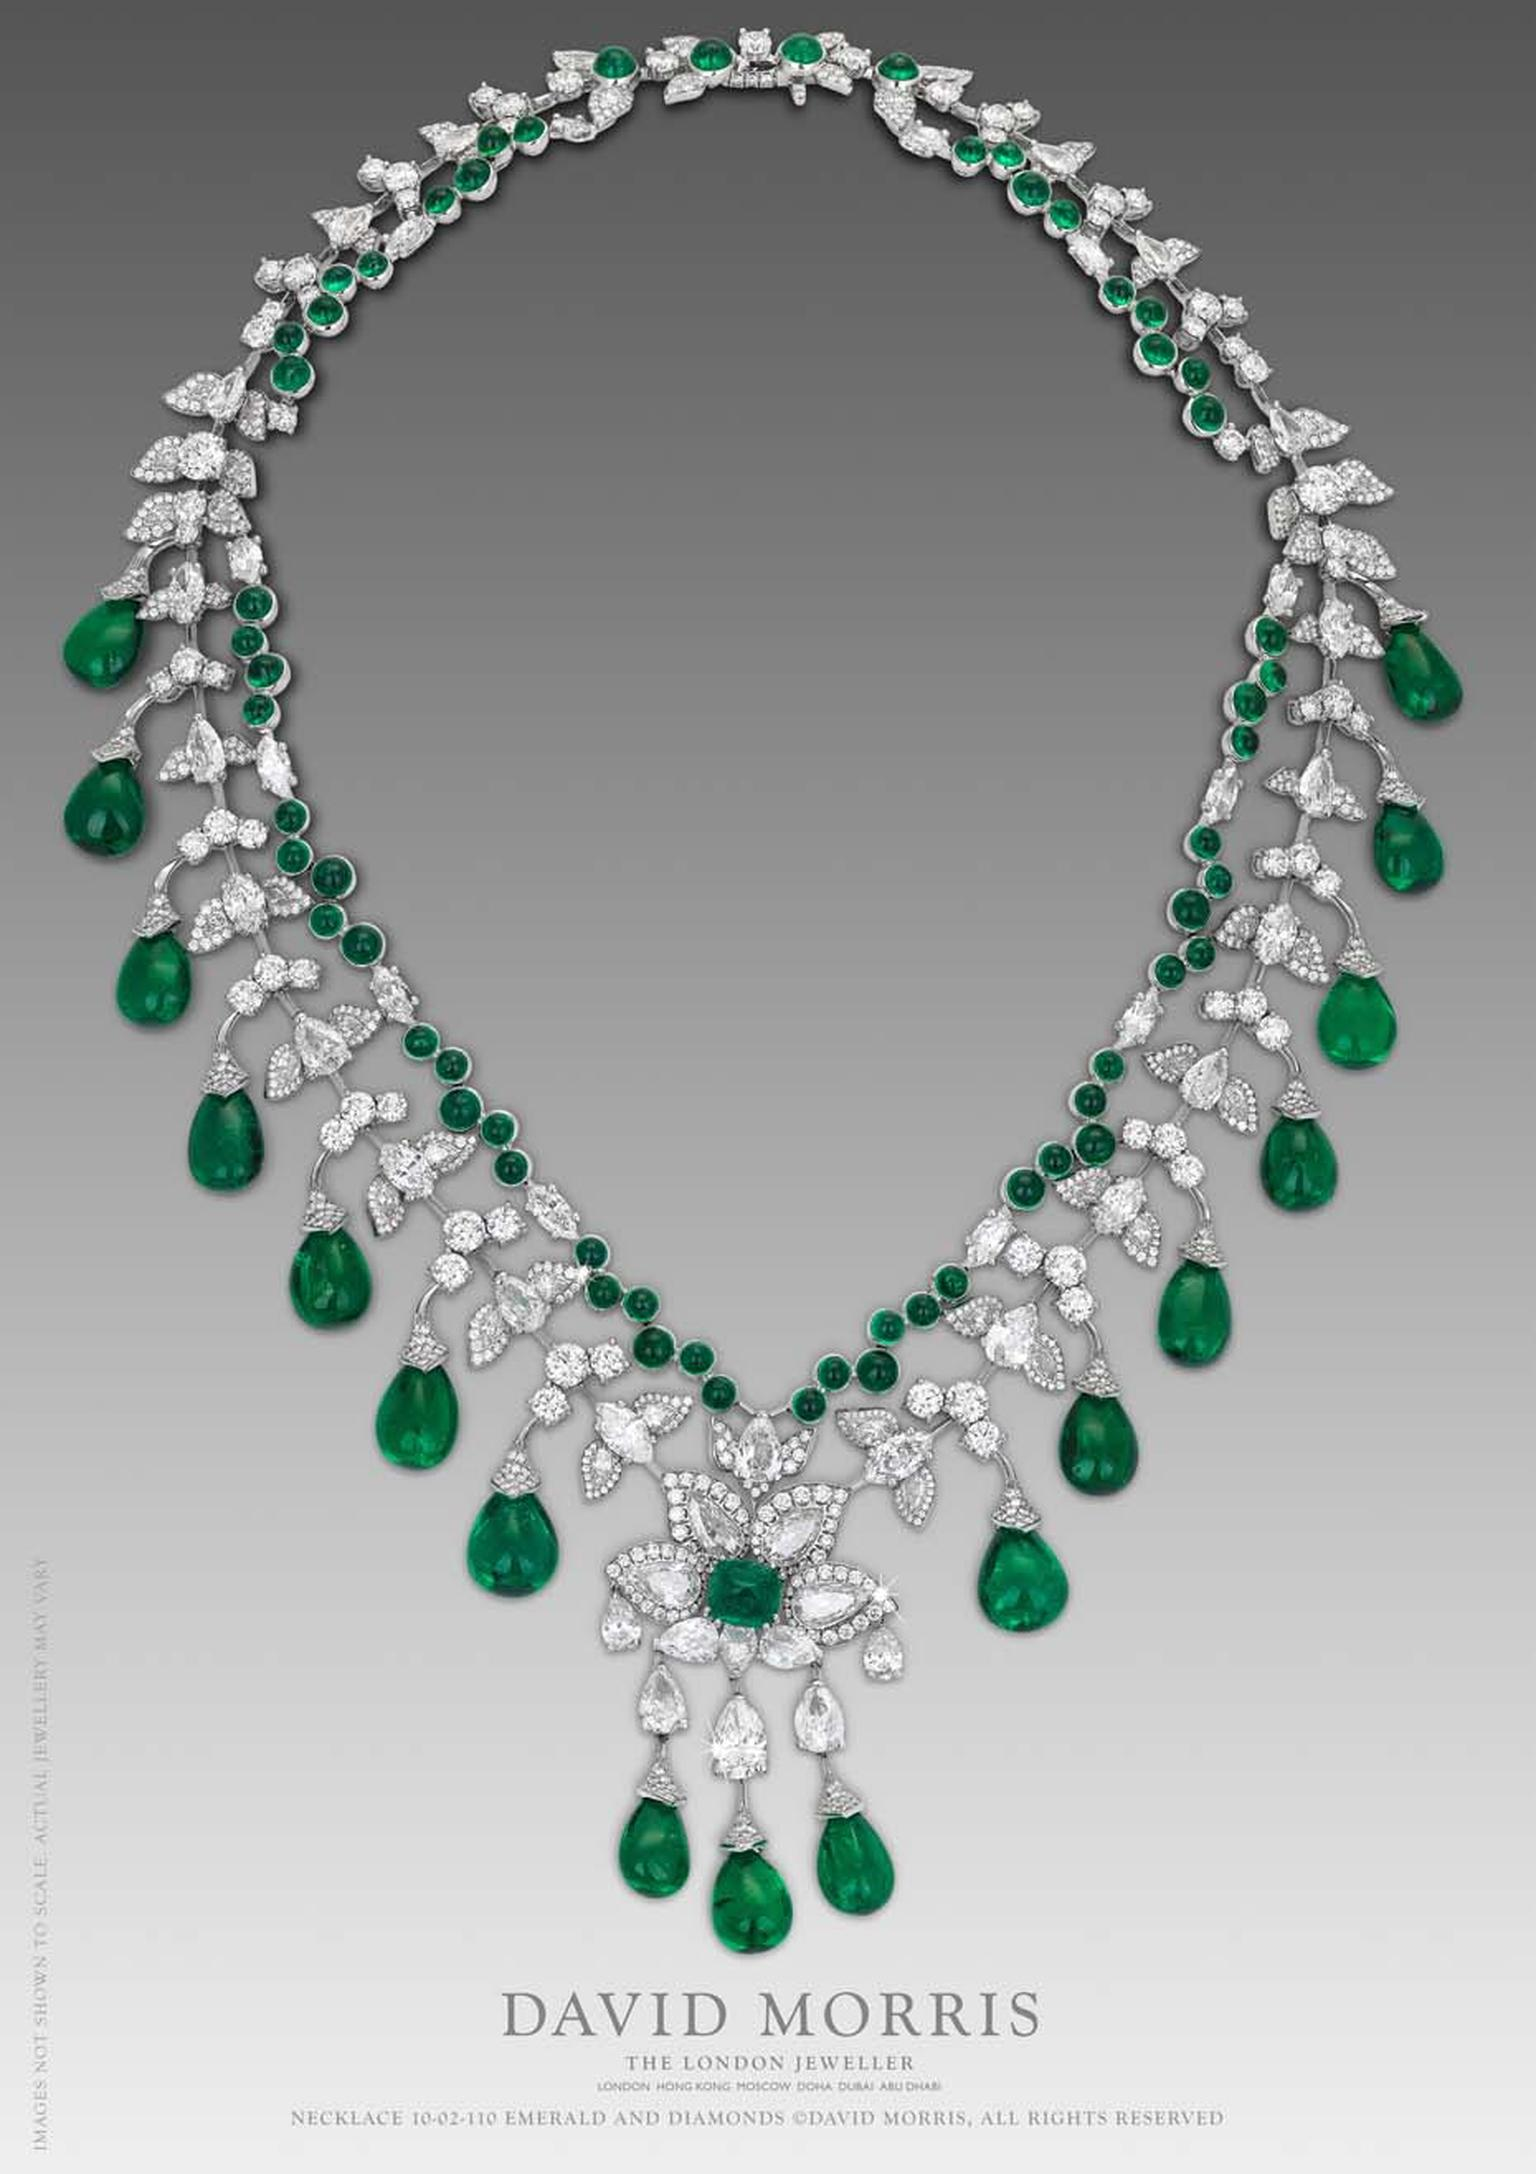 This Zambian emerald cabouchon necklace by David Morris, with round marquise diamonds and a pear shape motif set in 18ct white gold is truly breathtaking.